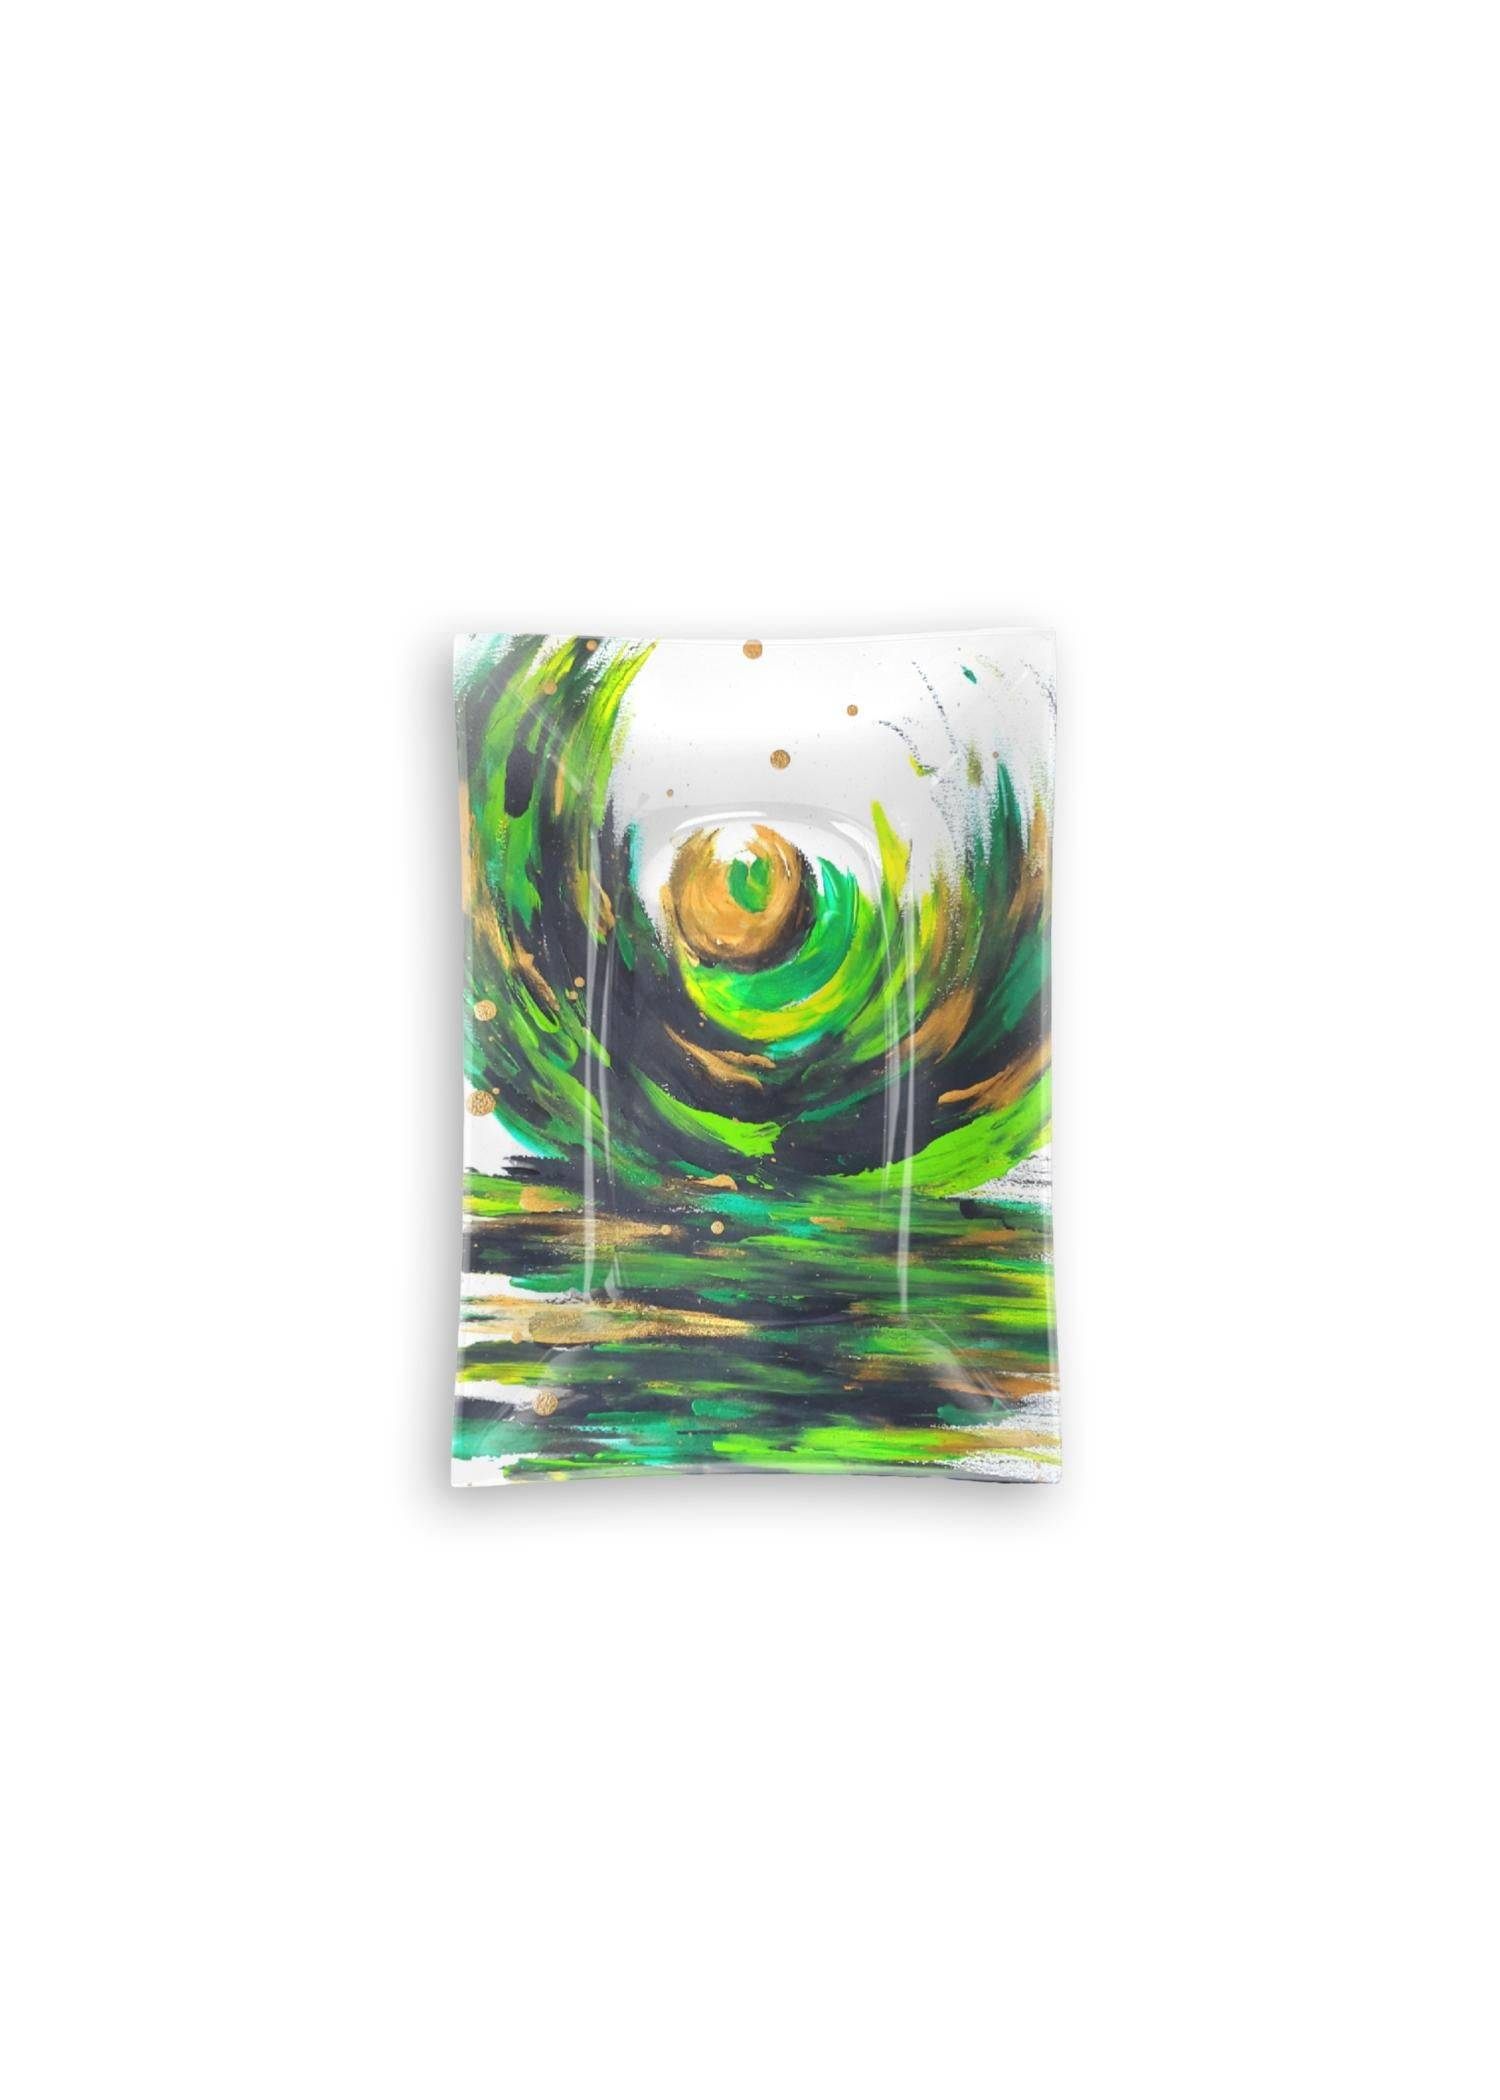 VIDA Oblong Glass Tray - Love Sees No Boundaries in Green/White/Yellow by VIDA Original Artist  - Size: Small